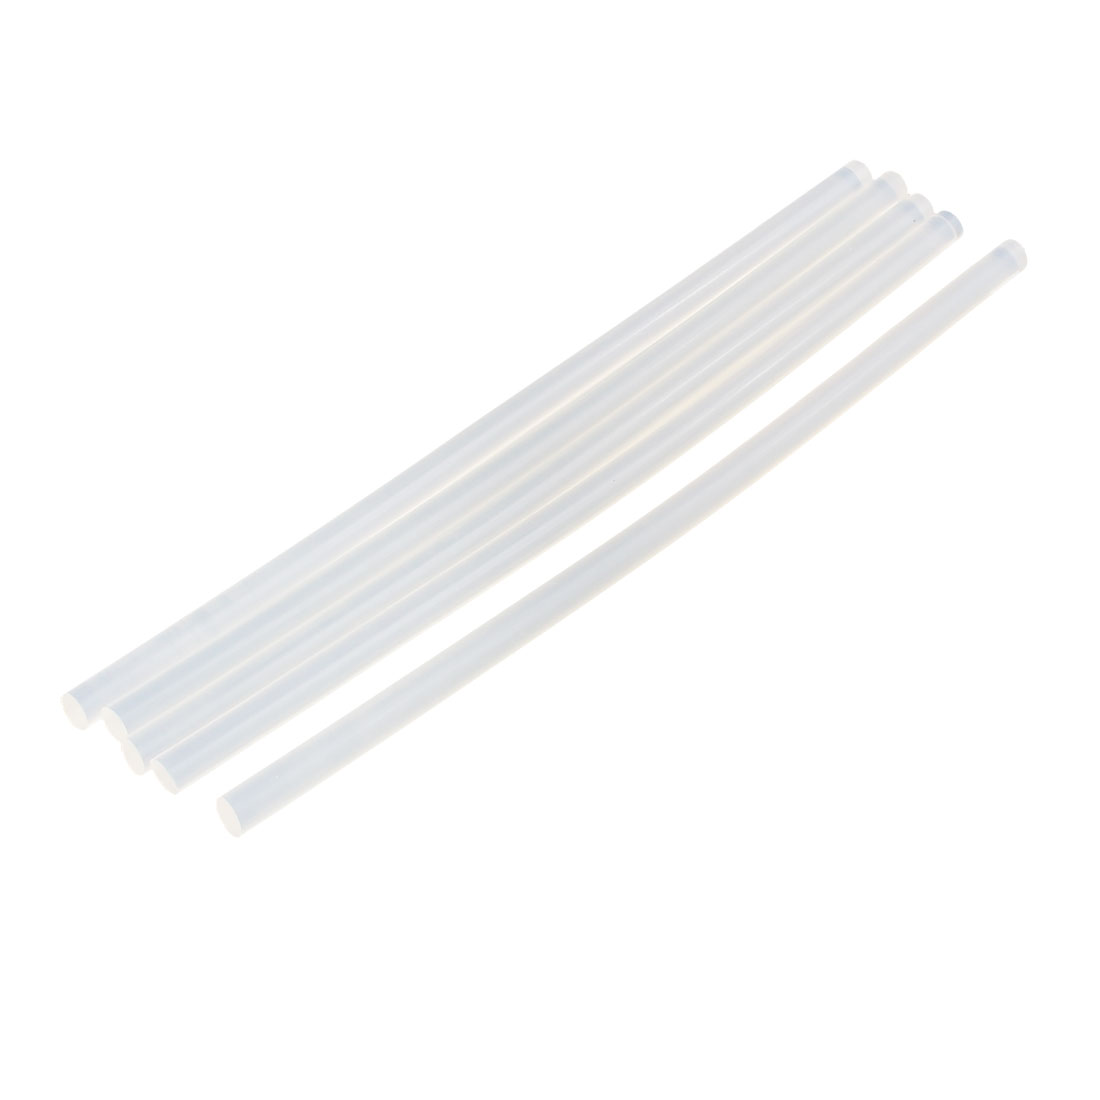 5 Pcs 7mm x 190mm Hot Melt Glue Adhesive Stick Clear for Electric Tool Heating Gun